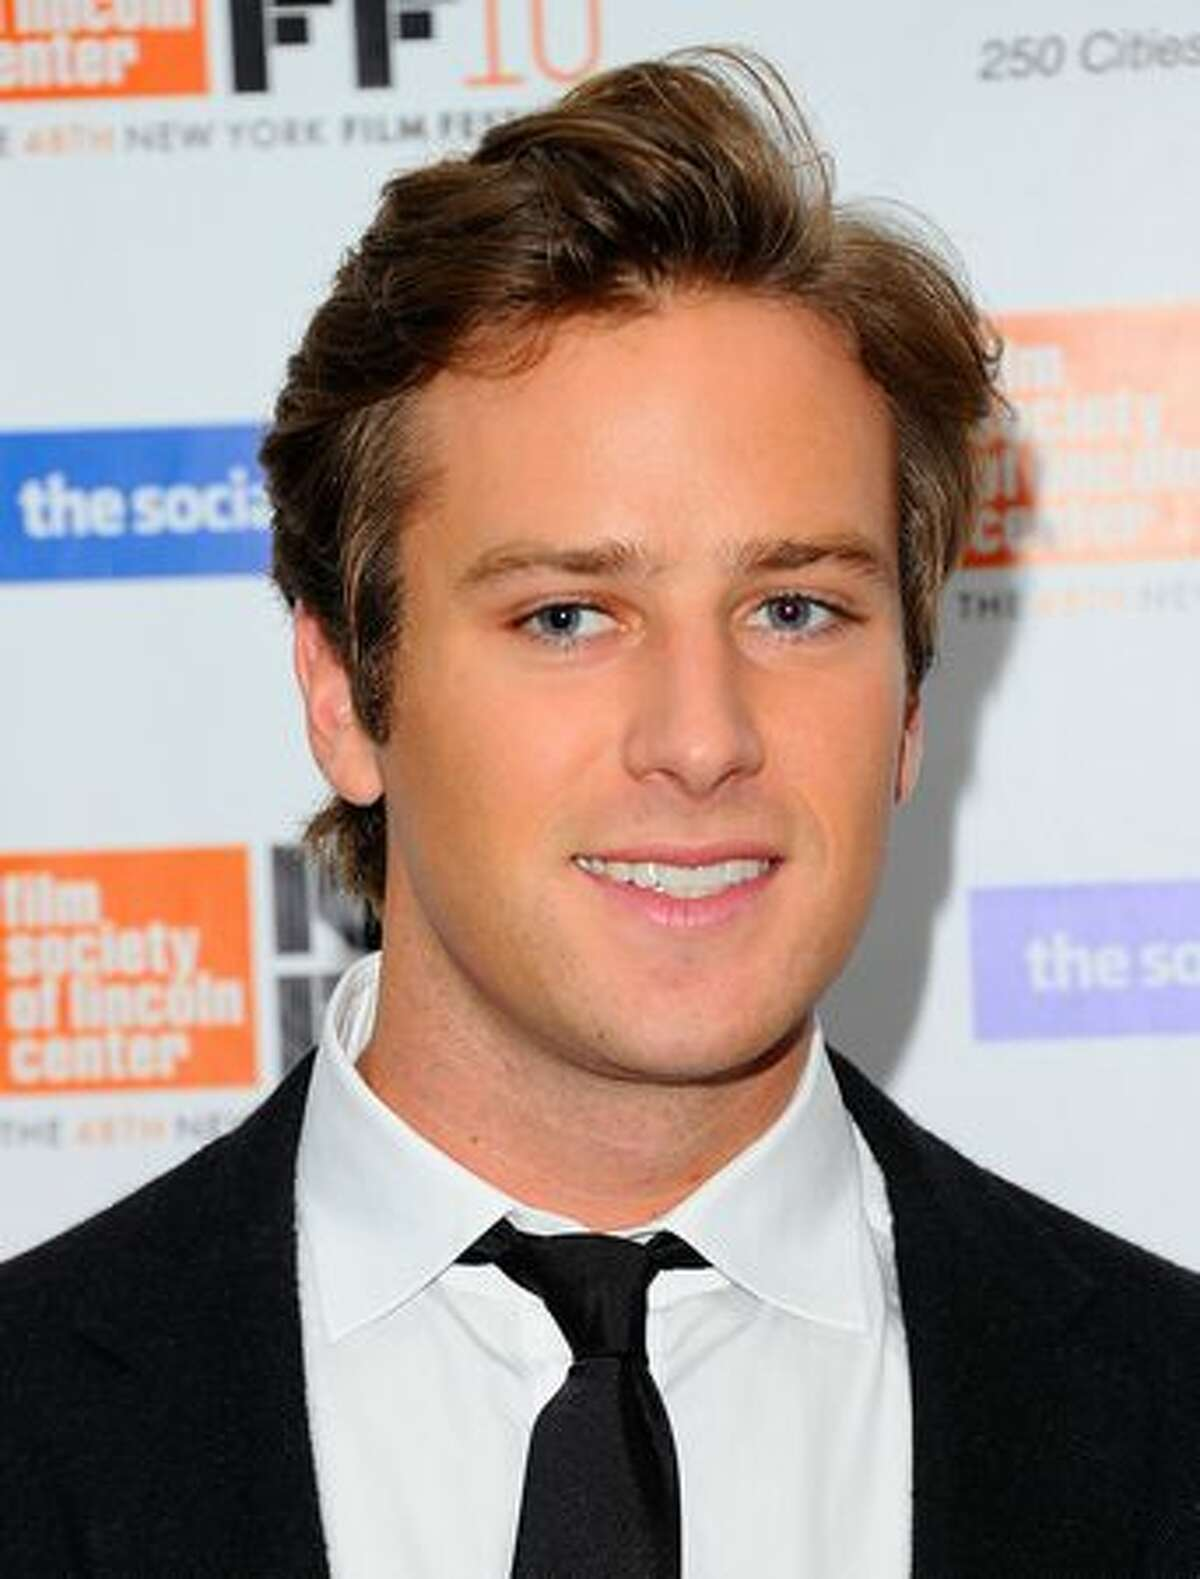 """Actor Armie Hammer attends the premiere of """"The Social Network"""" during the 48th New York Film Festival at Alice Tully Hall, Lincoln Center in New York City."""